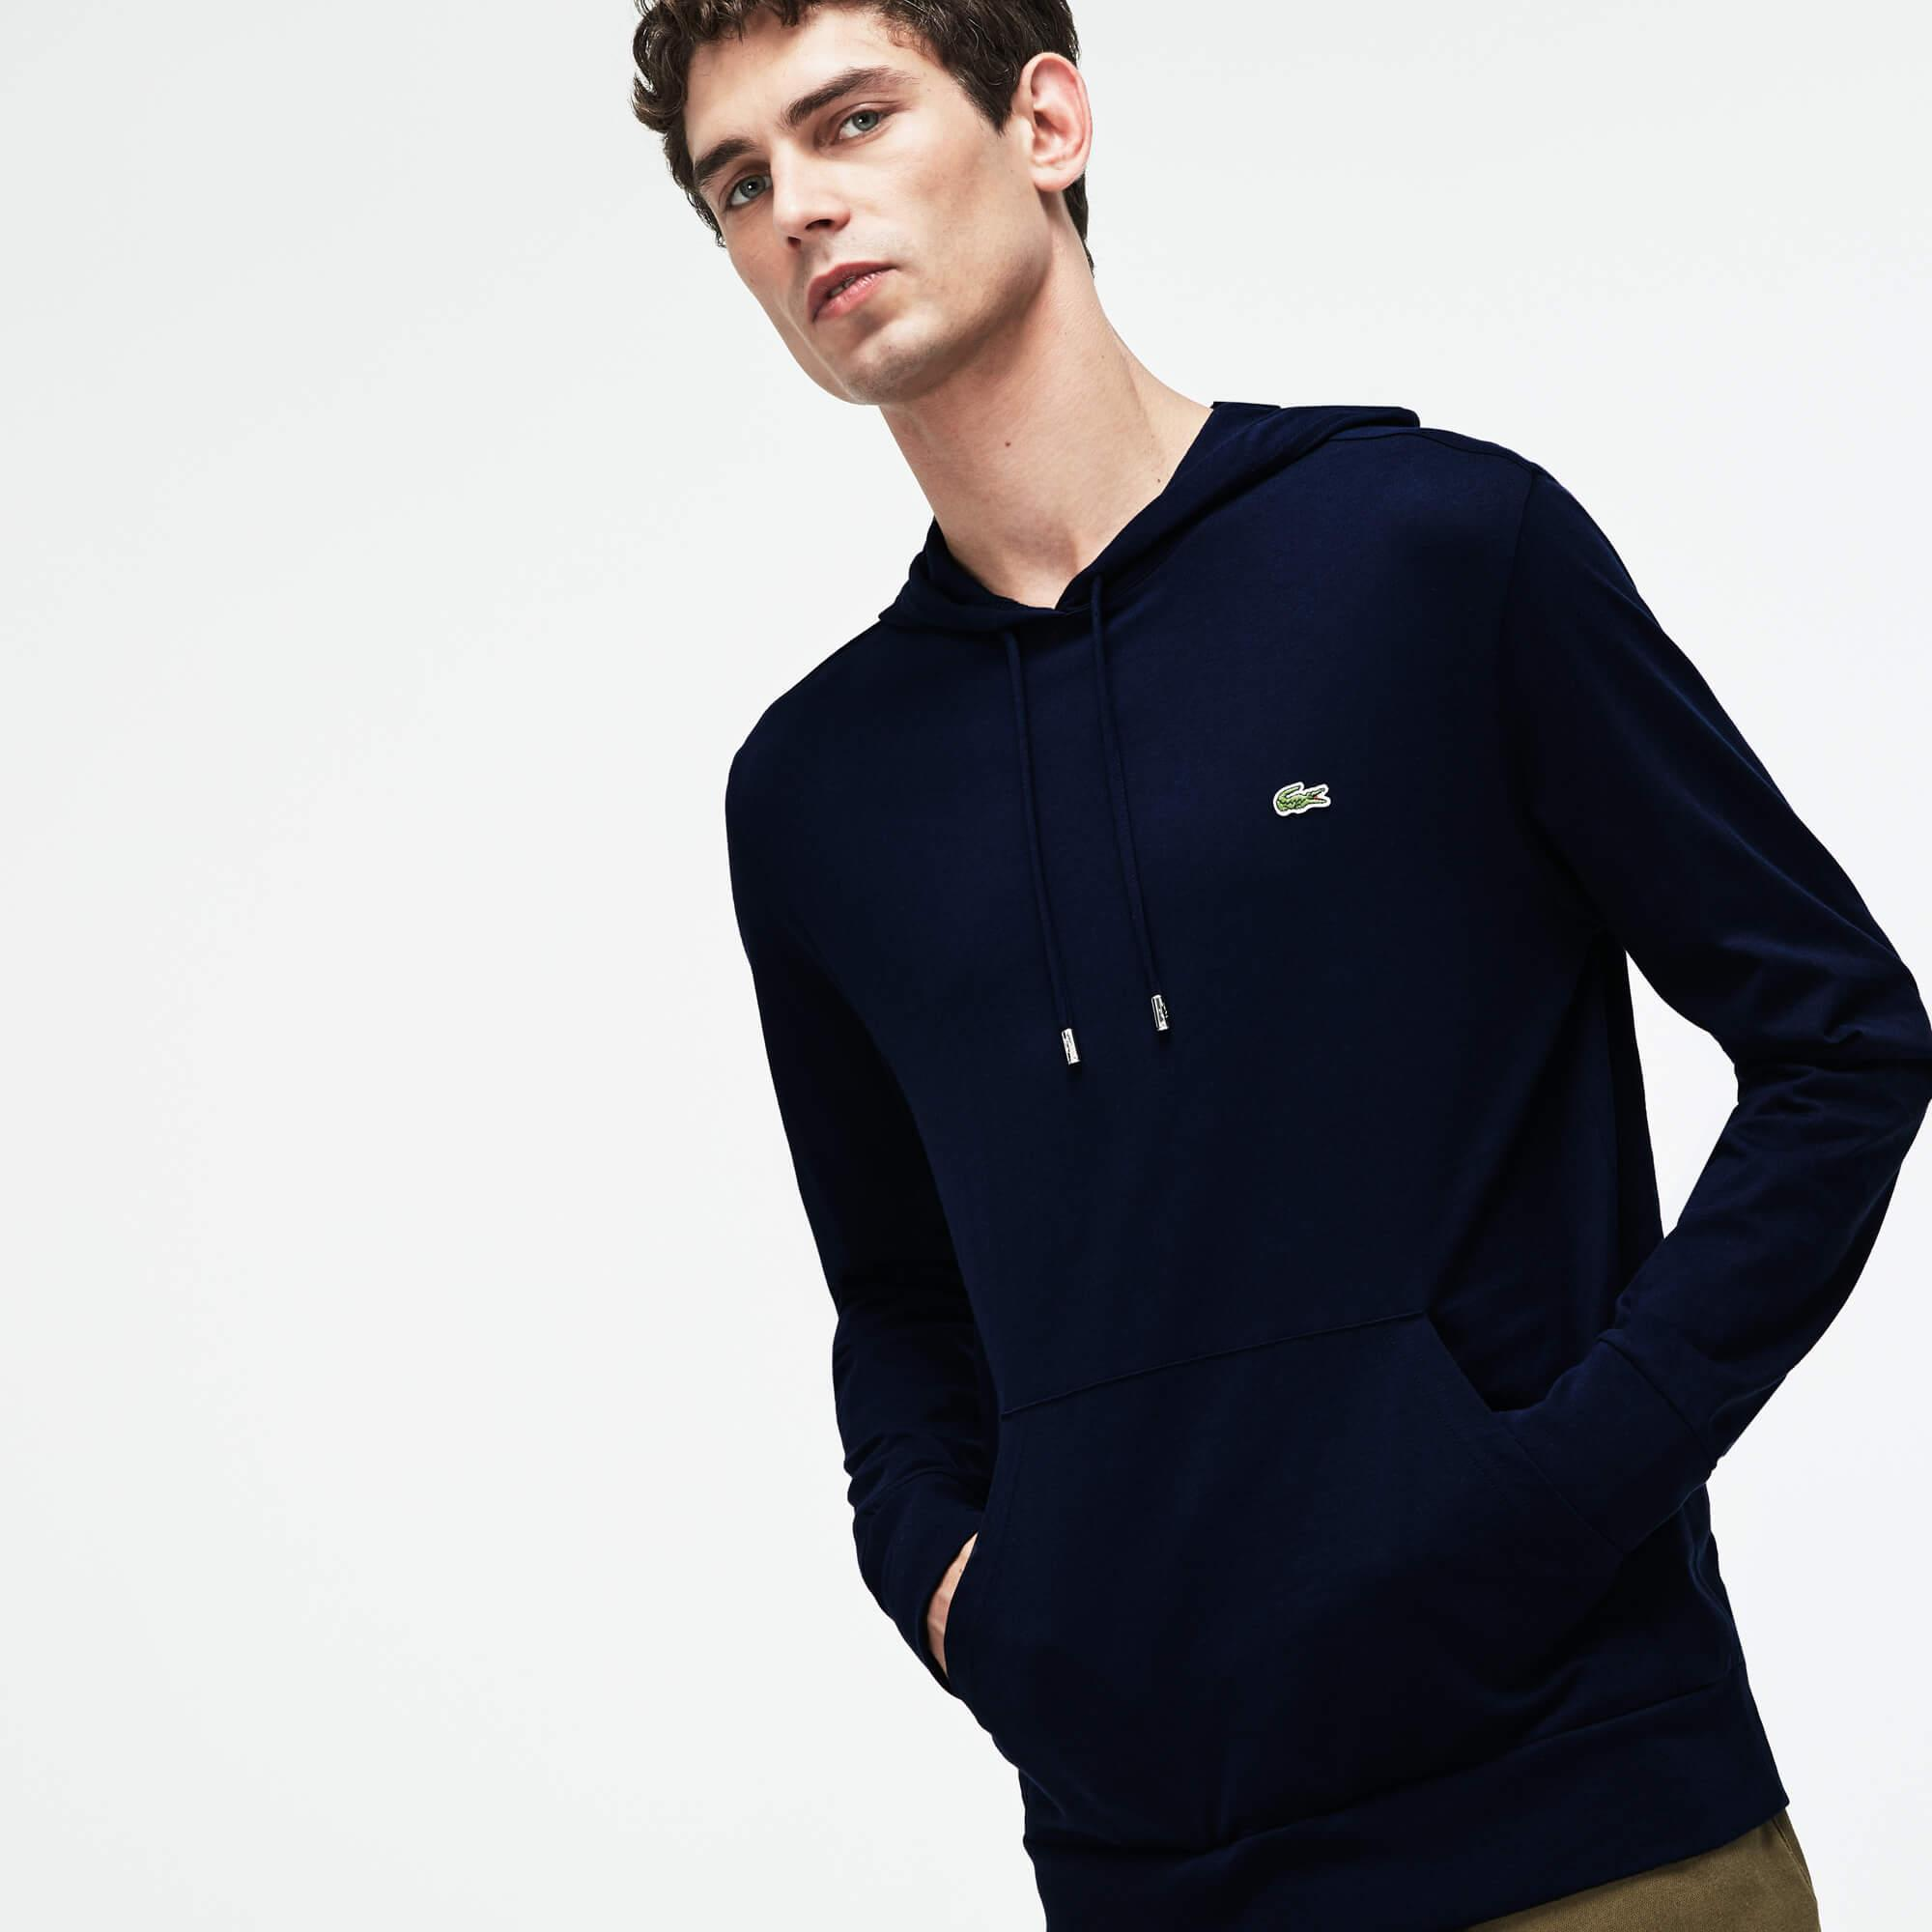 Lacoste Men's Hooded Cotton Sweatshirt